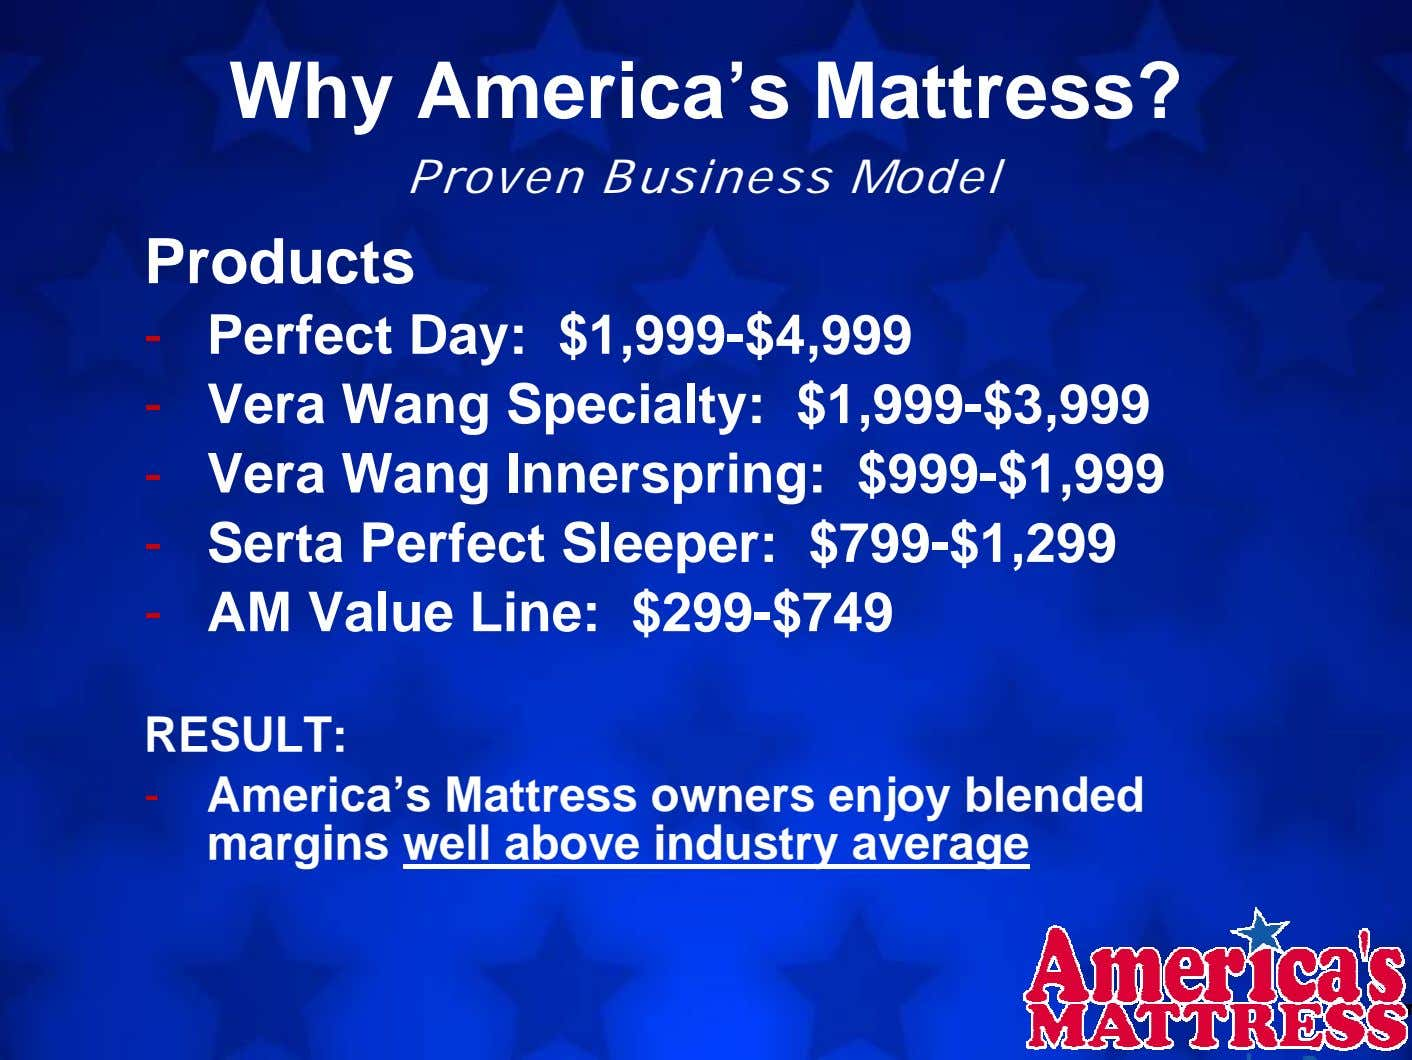 Why America's Mattress? Proven Business Model Products - Perfect Day: $1,999-$4,999 - Vera Wang Specialty: